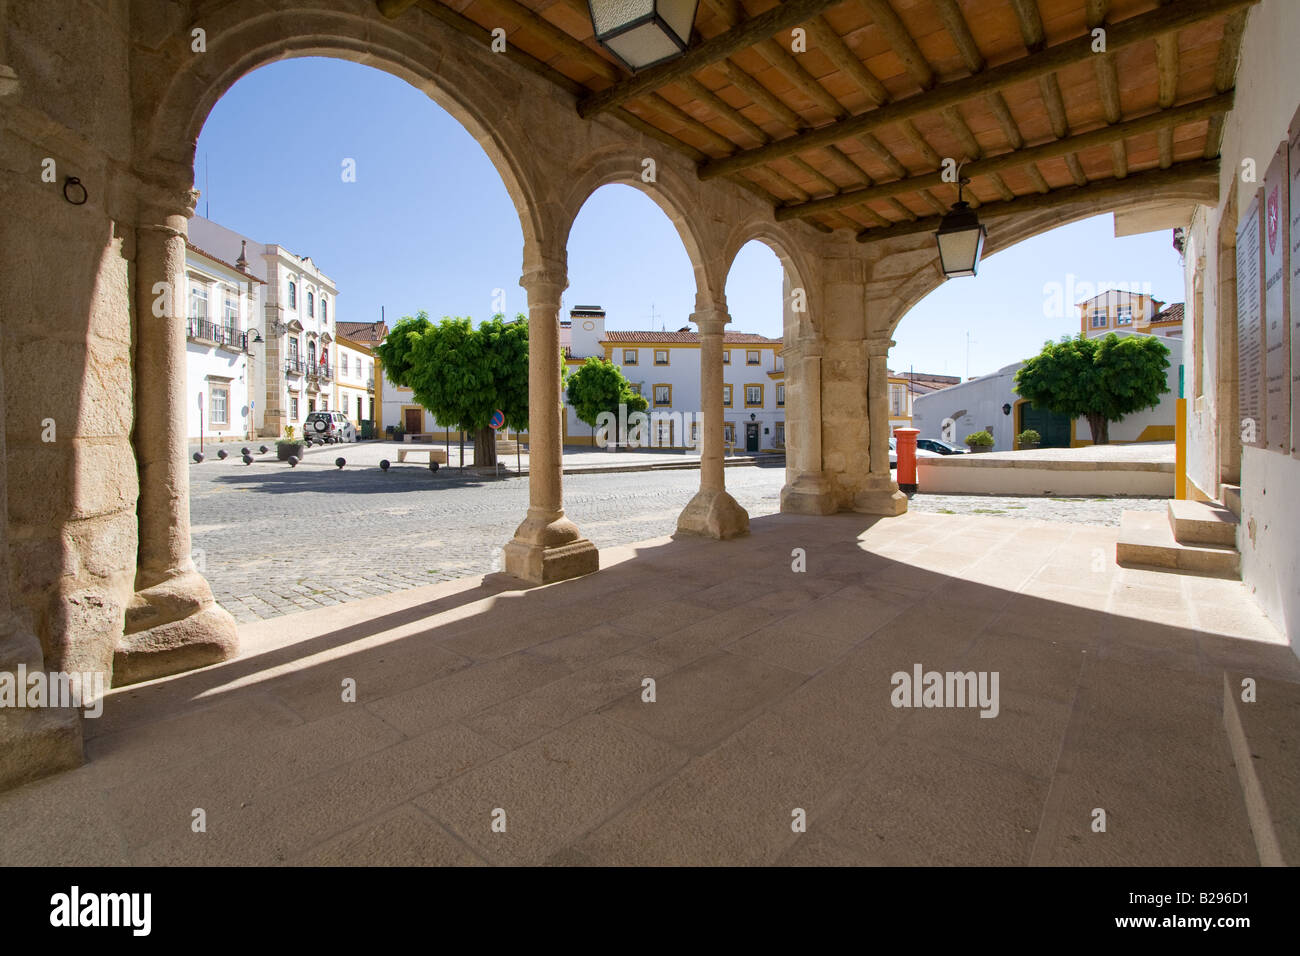 View of the Municipality Square of Crato (Portugal), seen from bellow the famous Grão-Prior Veranda. - Stock Image